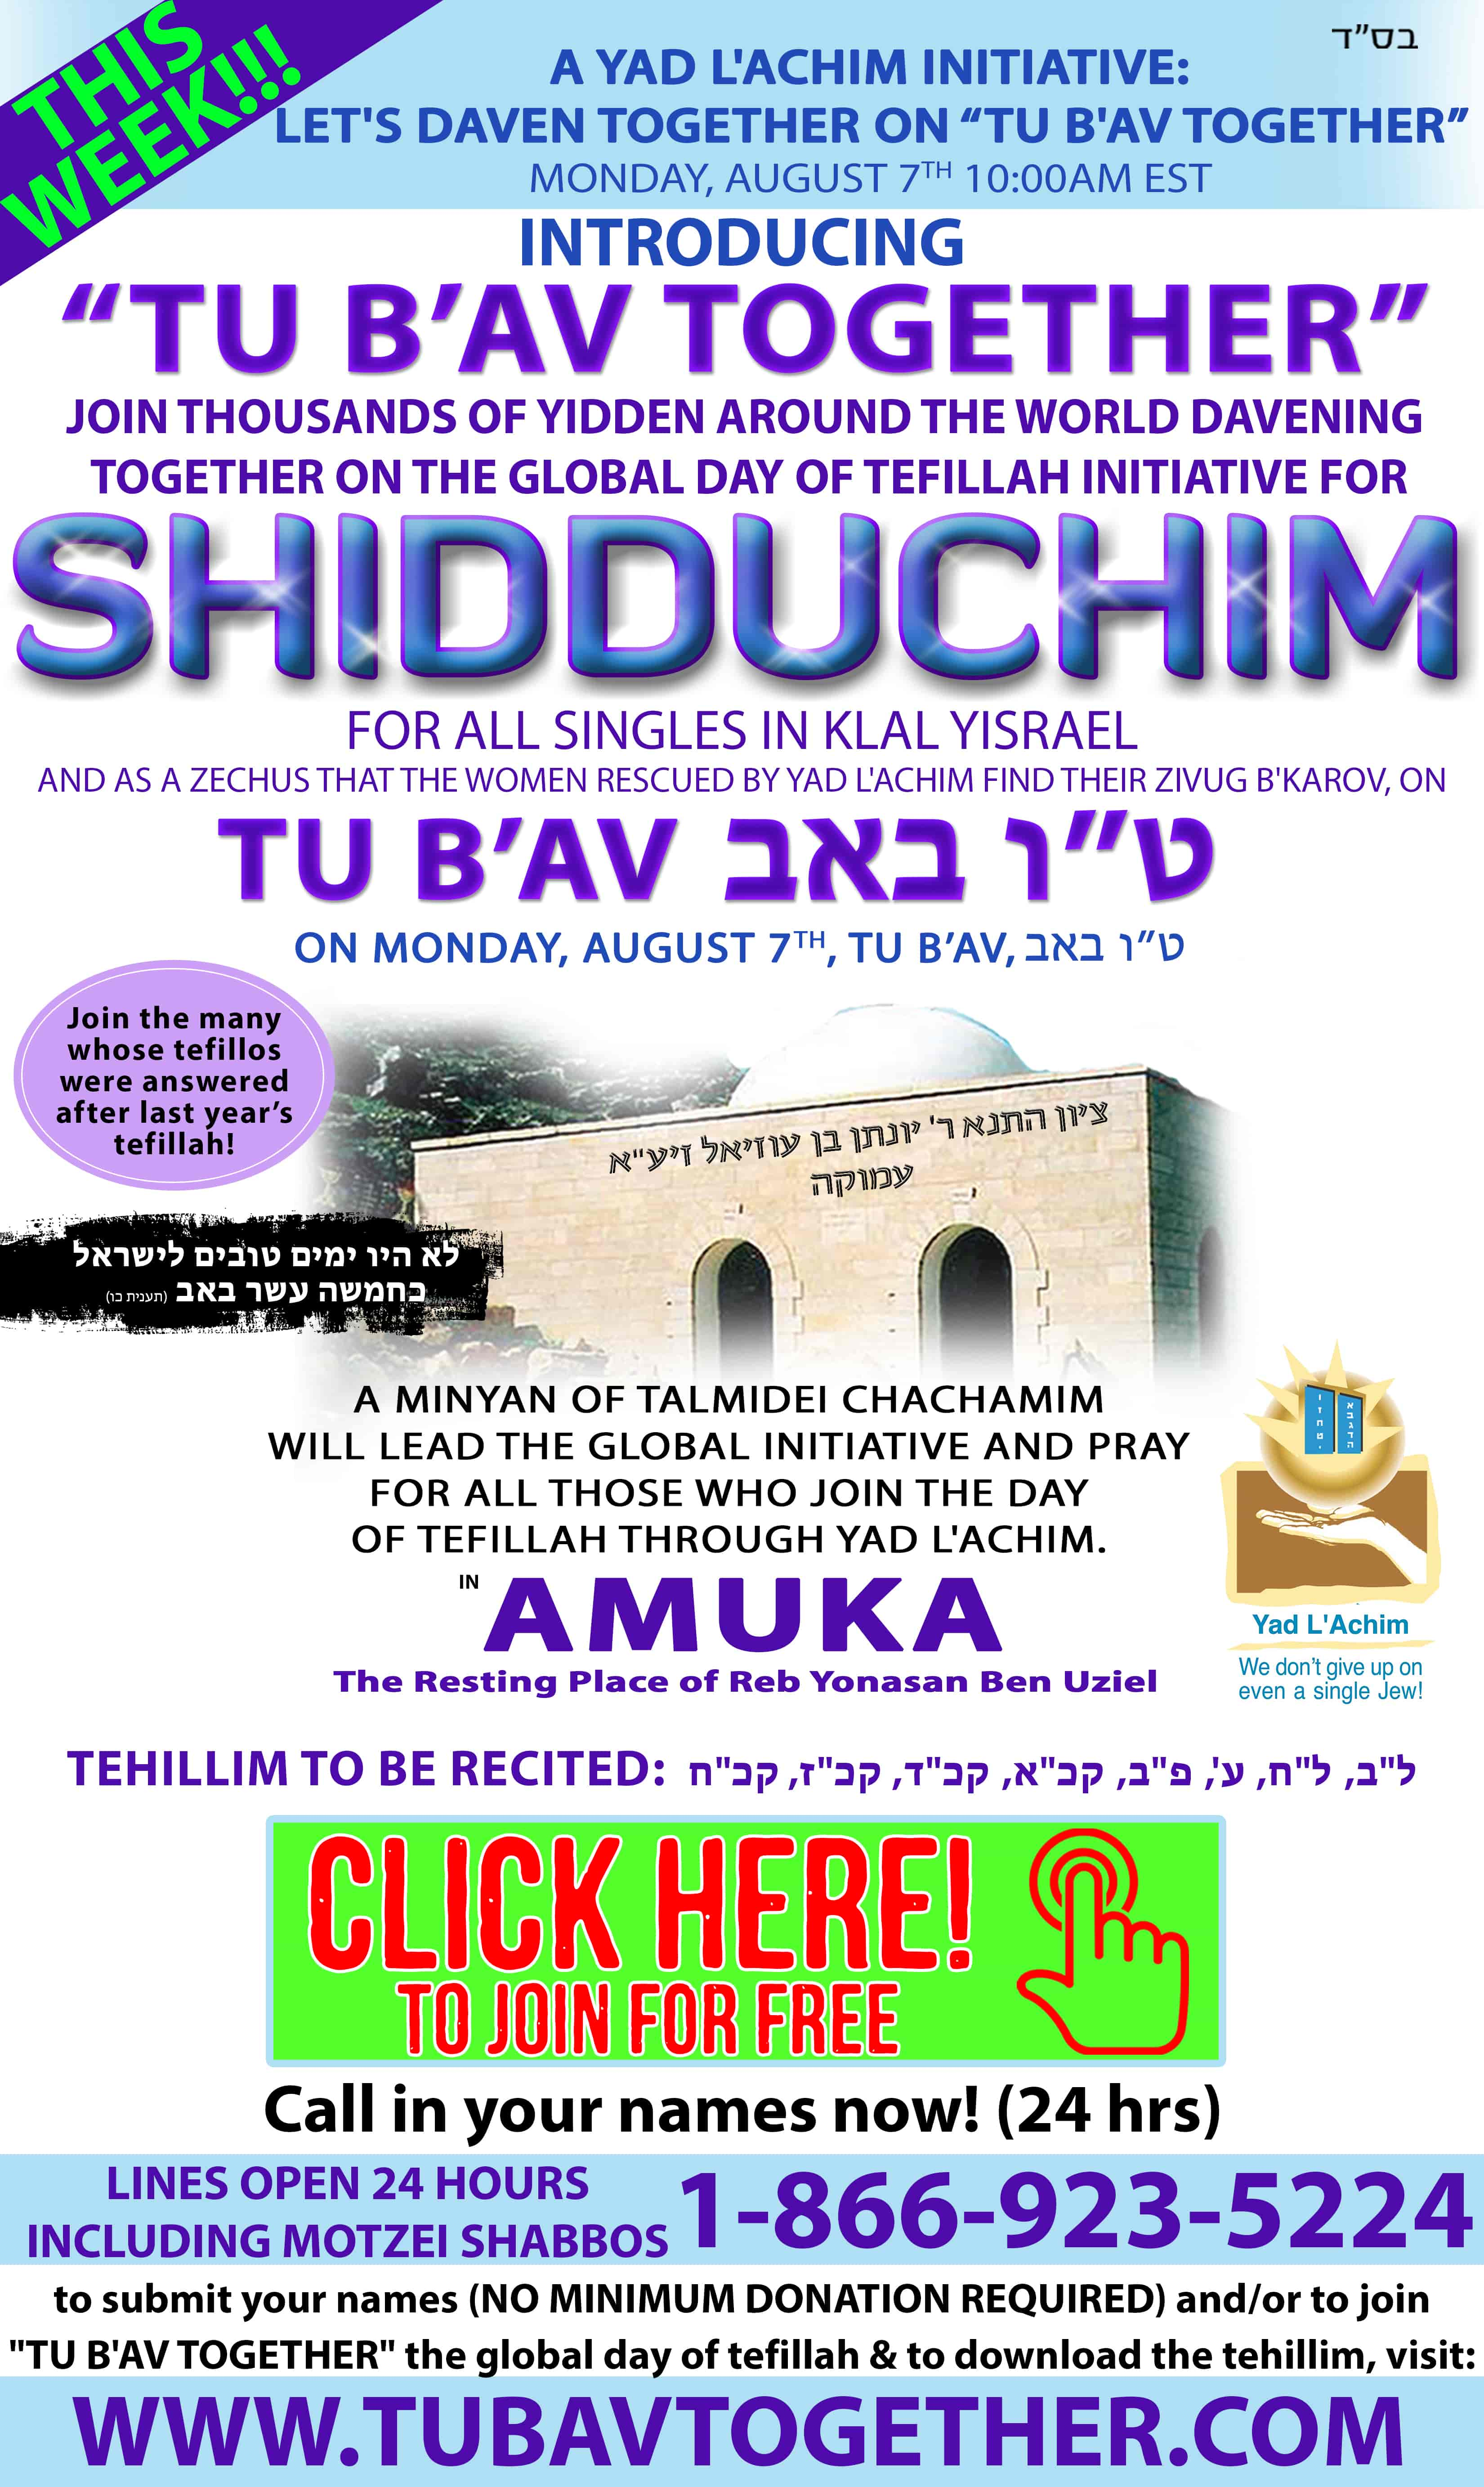 VIDEO) MONDAY 10 AM: The free Tefillah For Shidduchim In